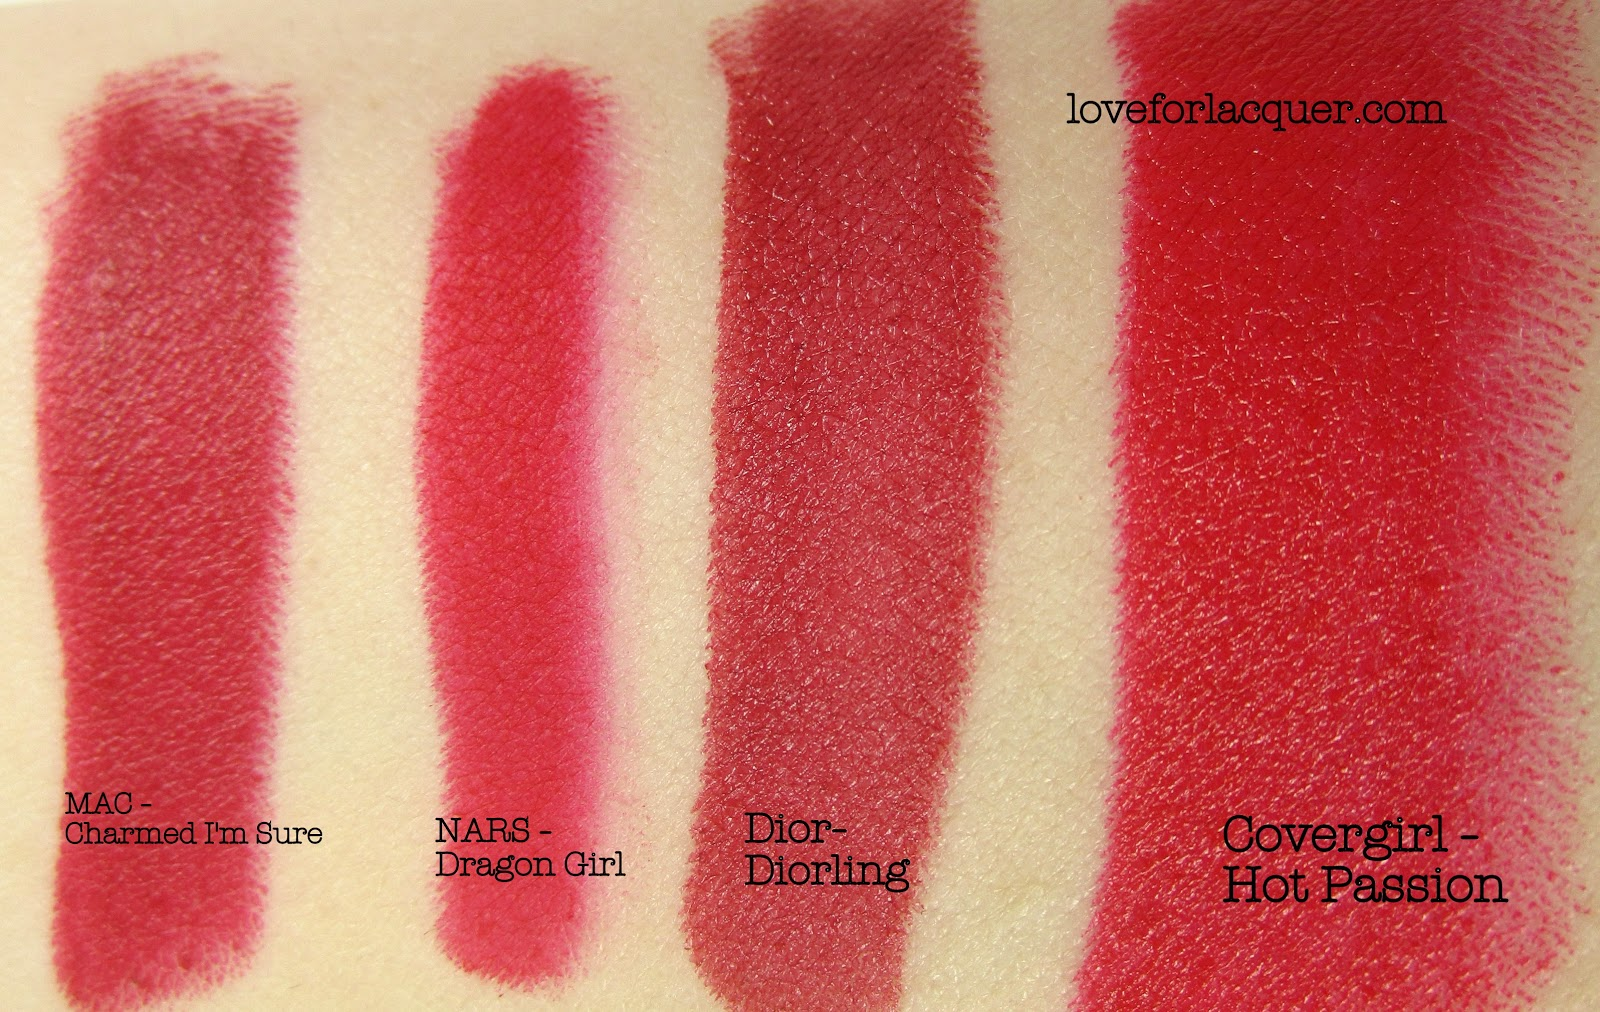 372c0e34eeb4 Top 10 RED Lipsticks - Taylor Swift Inspired! - Love for Lacquer